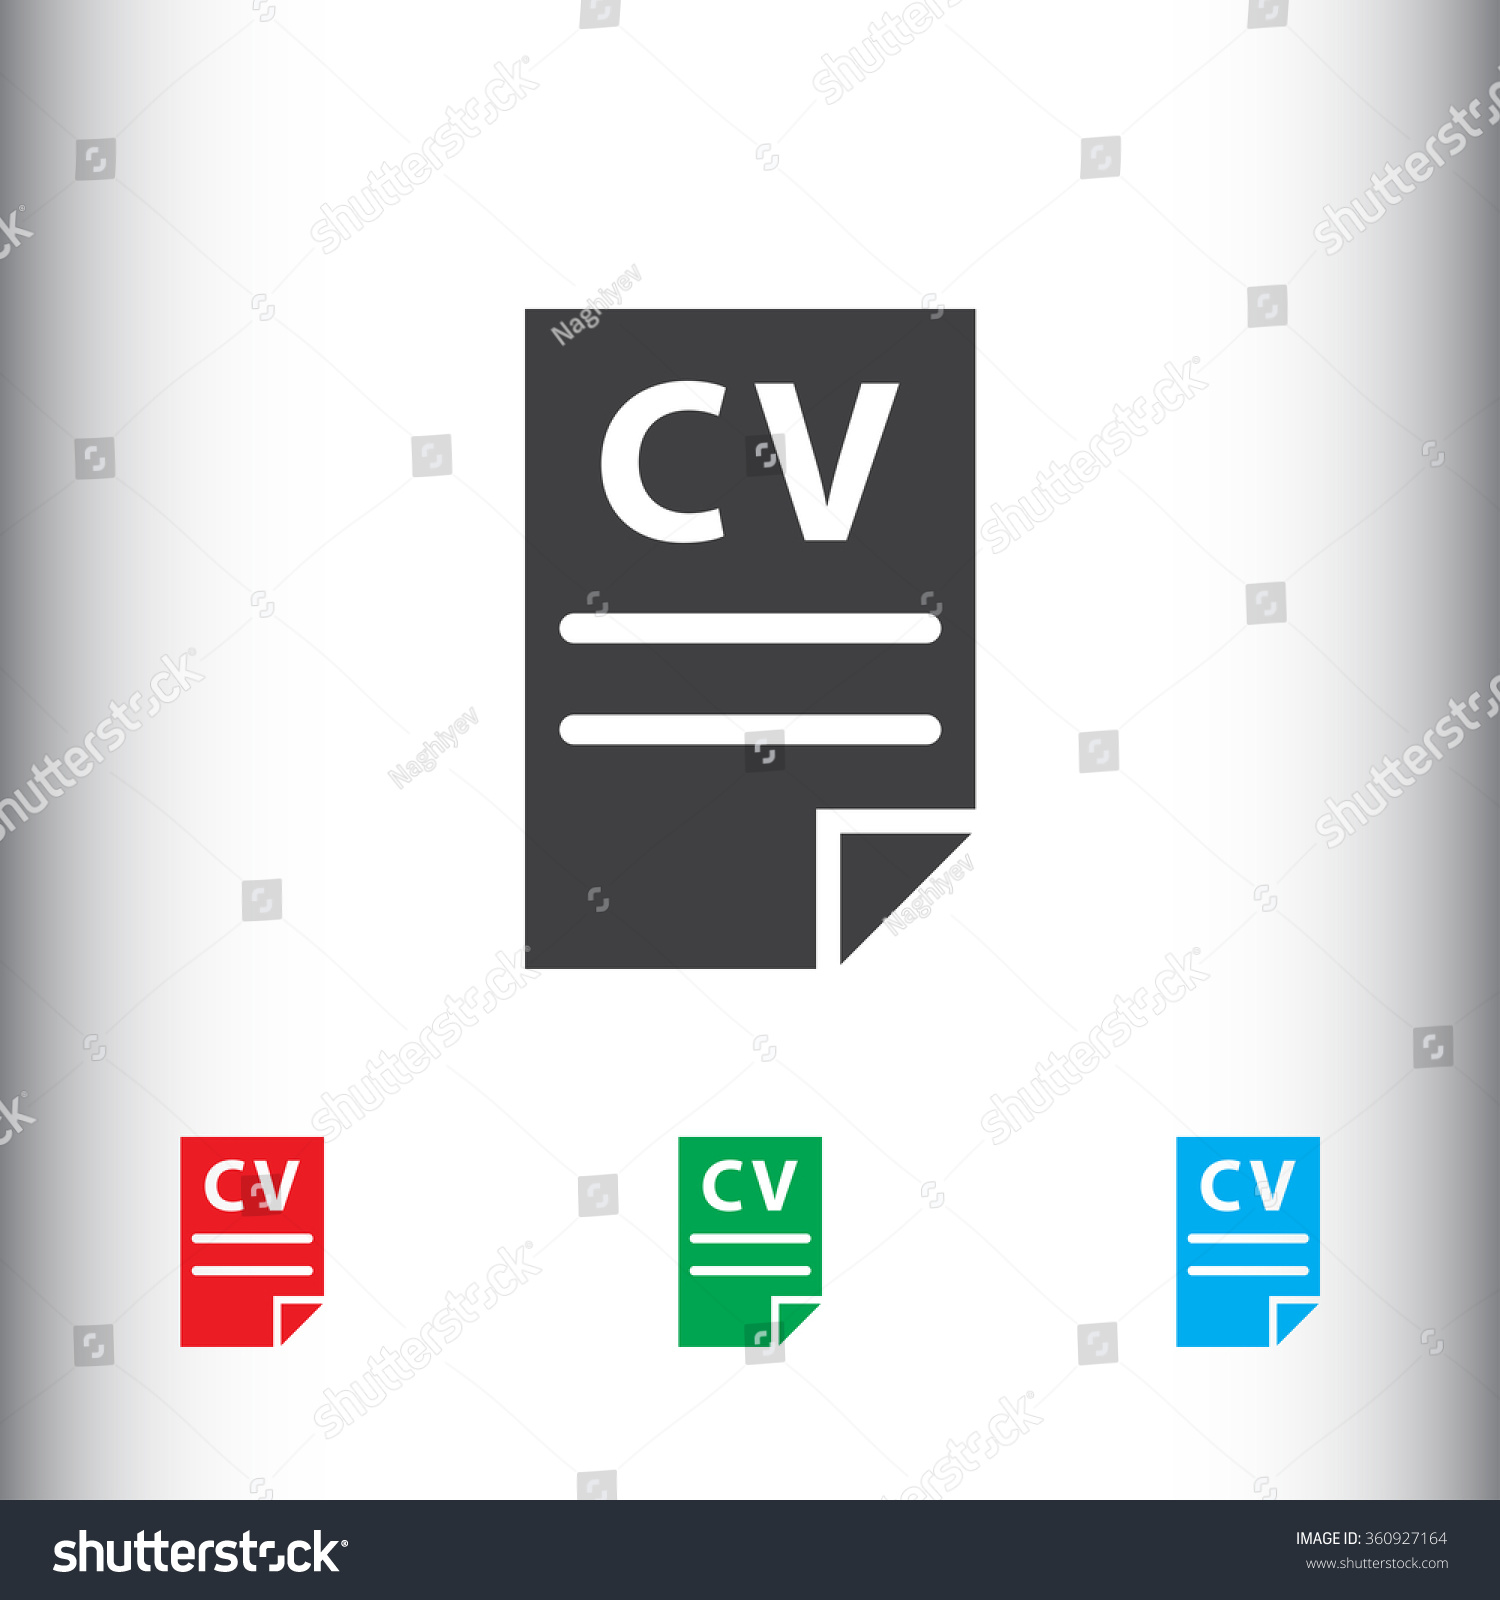 cv resume icon for web and mobile stock vector illustration